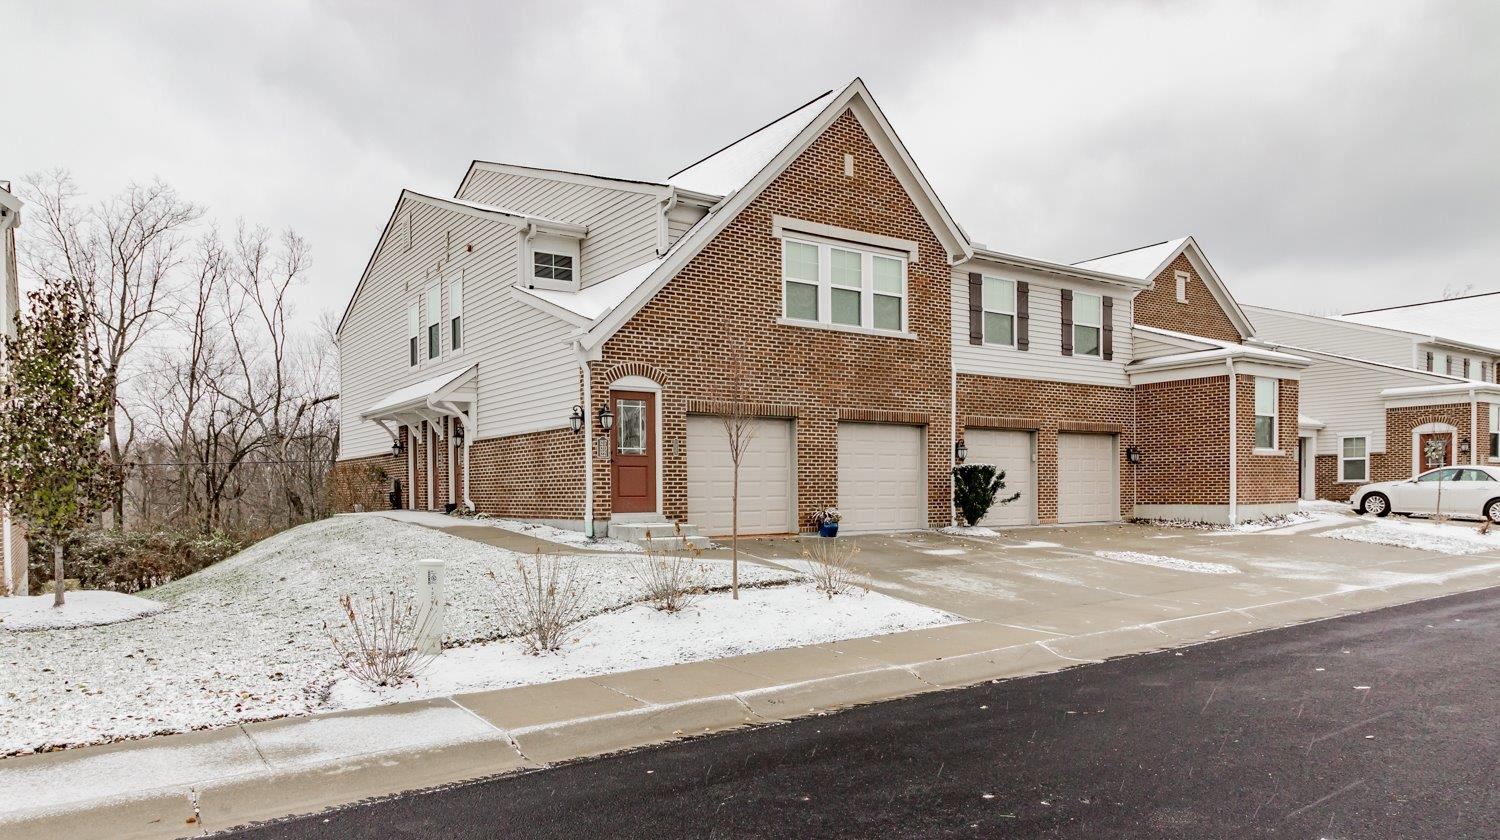 Property for sale at 1217 Double Eagle Court, Turtle Creek Twp,  OH 45036